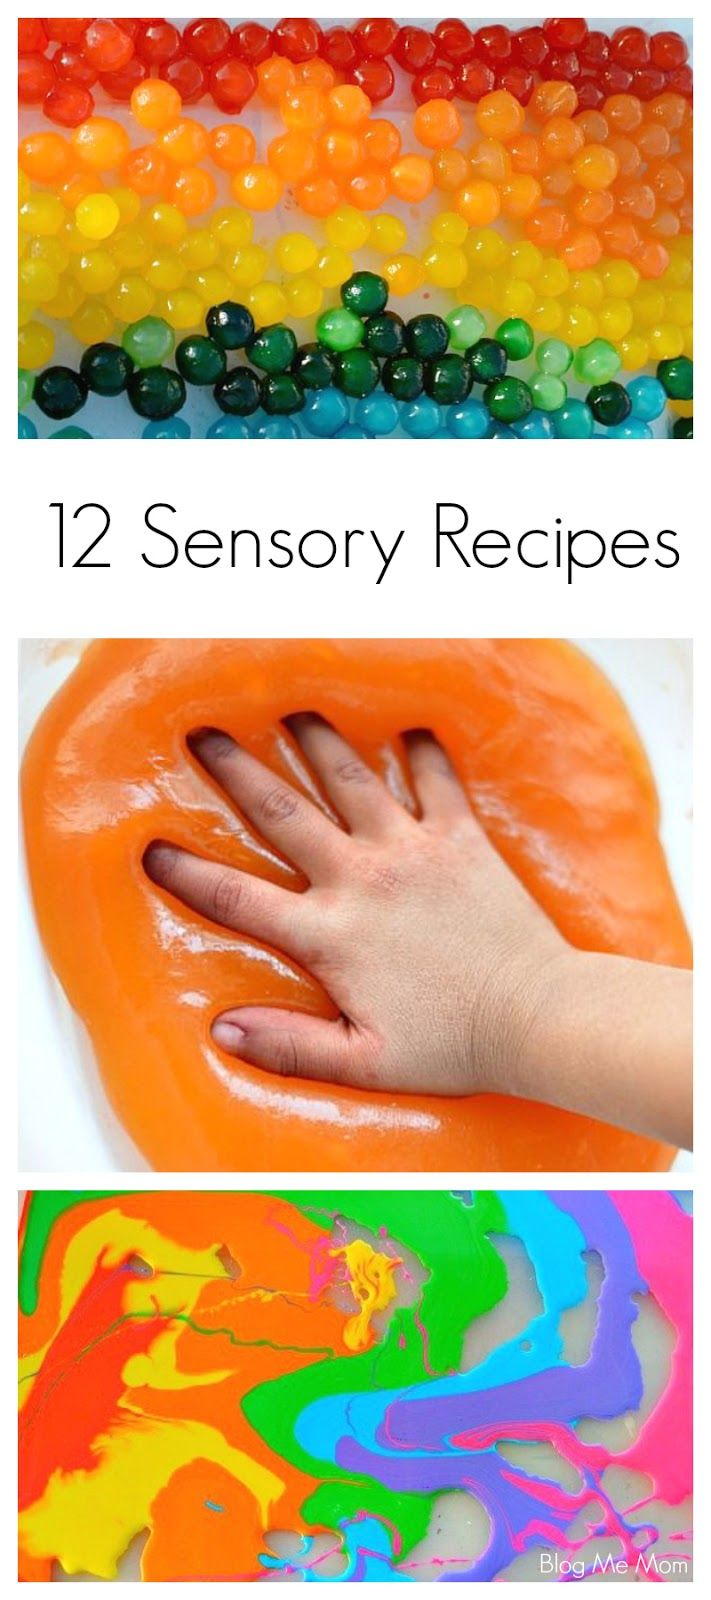 {Guest Post}  Twelve Sensory Play Recipes by Blog Me Mom for Fun at Home with Kids